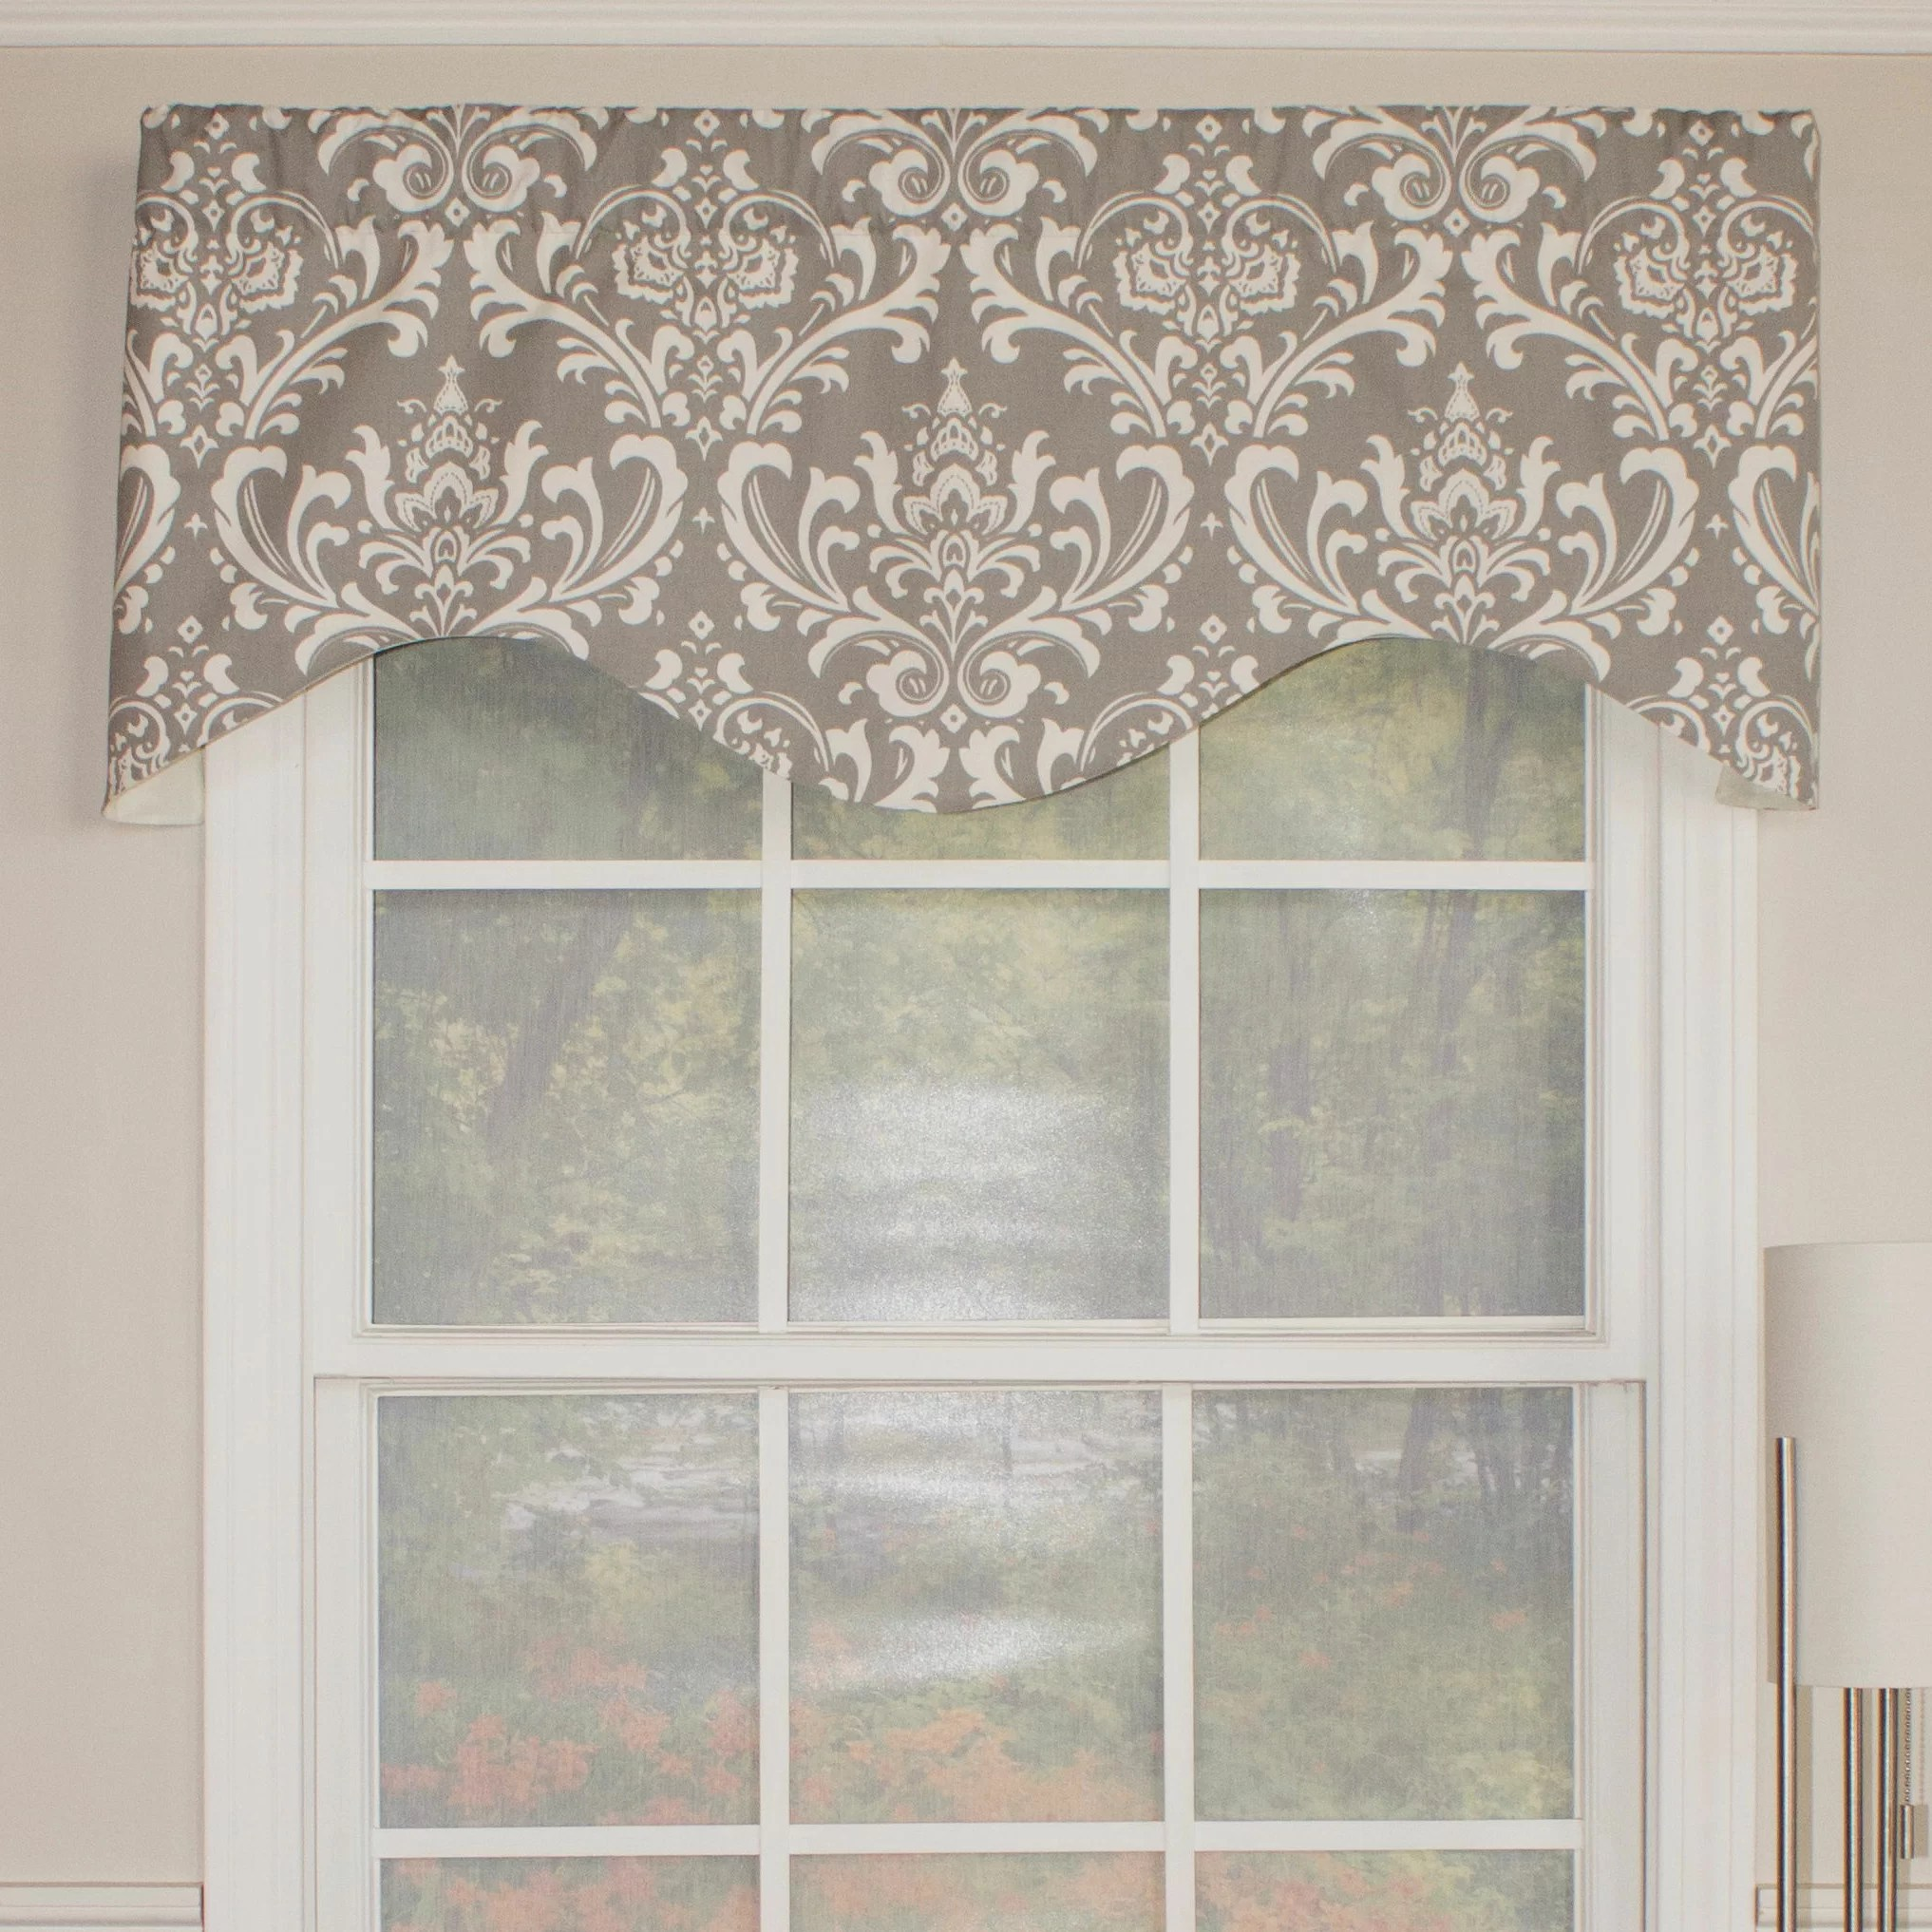 Rlf Home Royal Damask Cornice 50 Curtain Valance